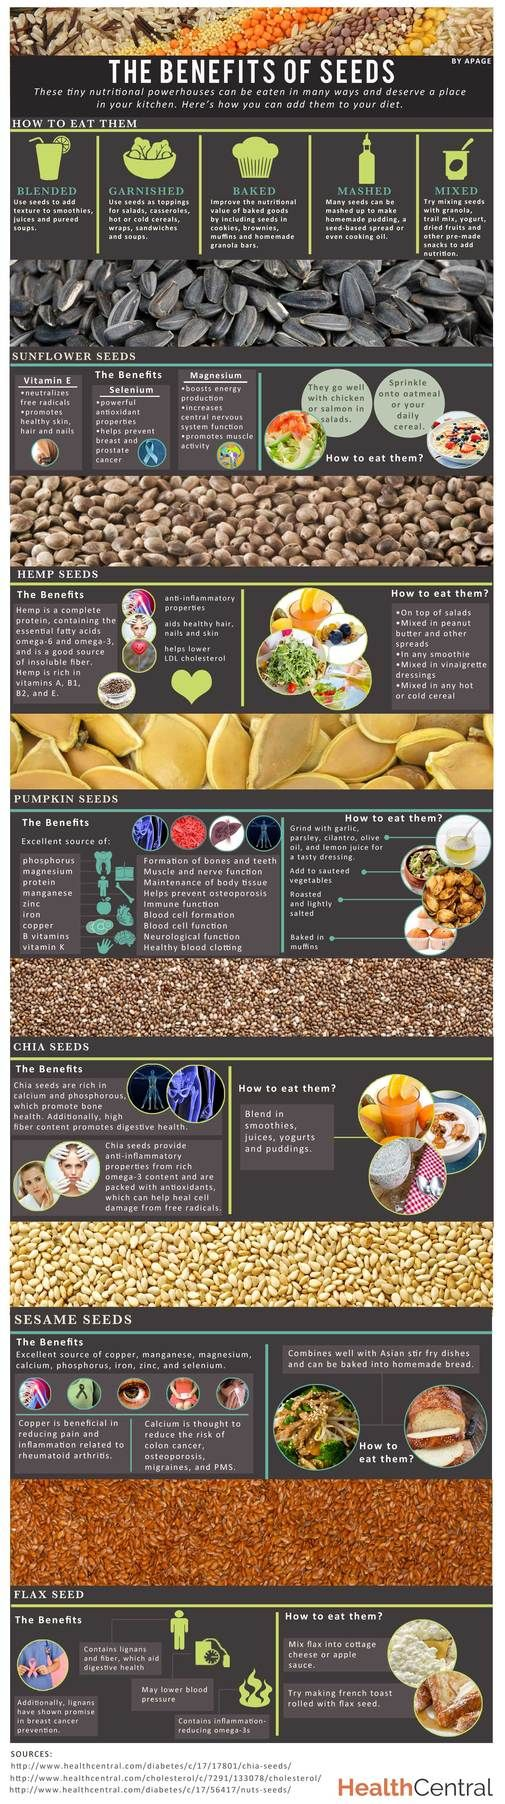 All About Seeds: Learn the Health Benefits of Seeds here in our #INFOGRAPHIC